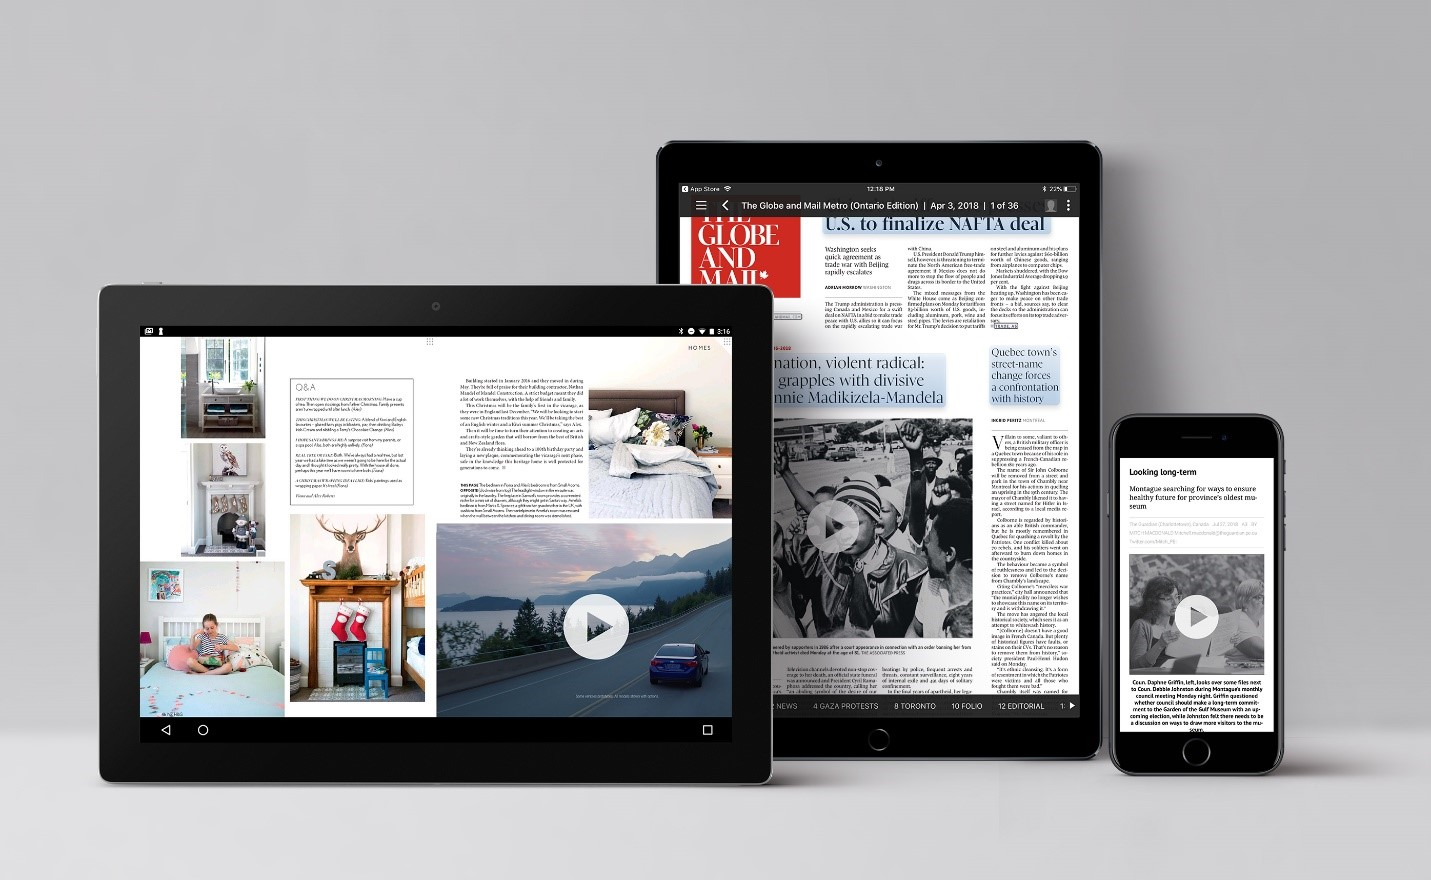 The Globe and Mail on Branded Editions technology